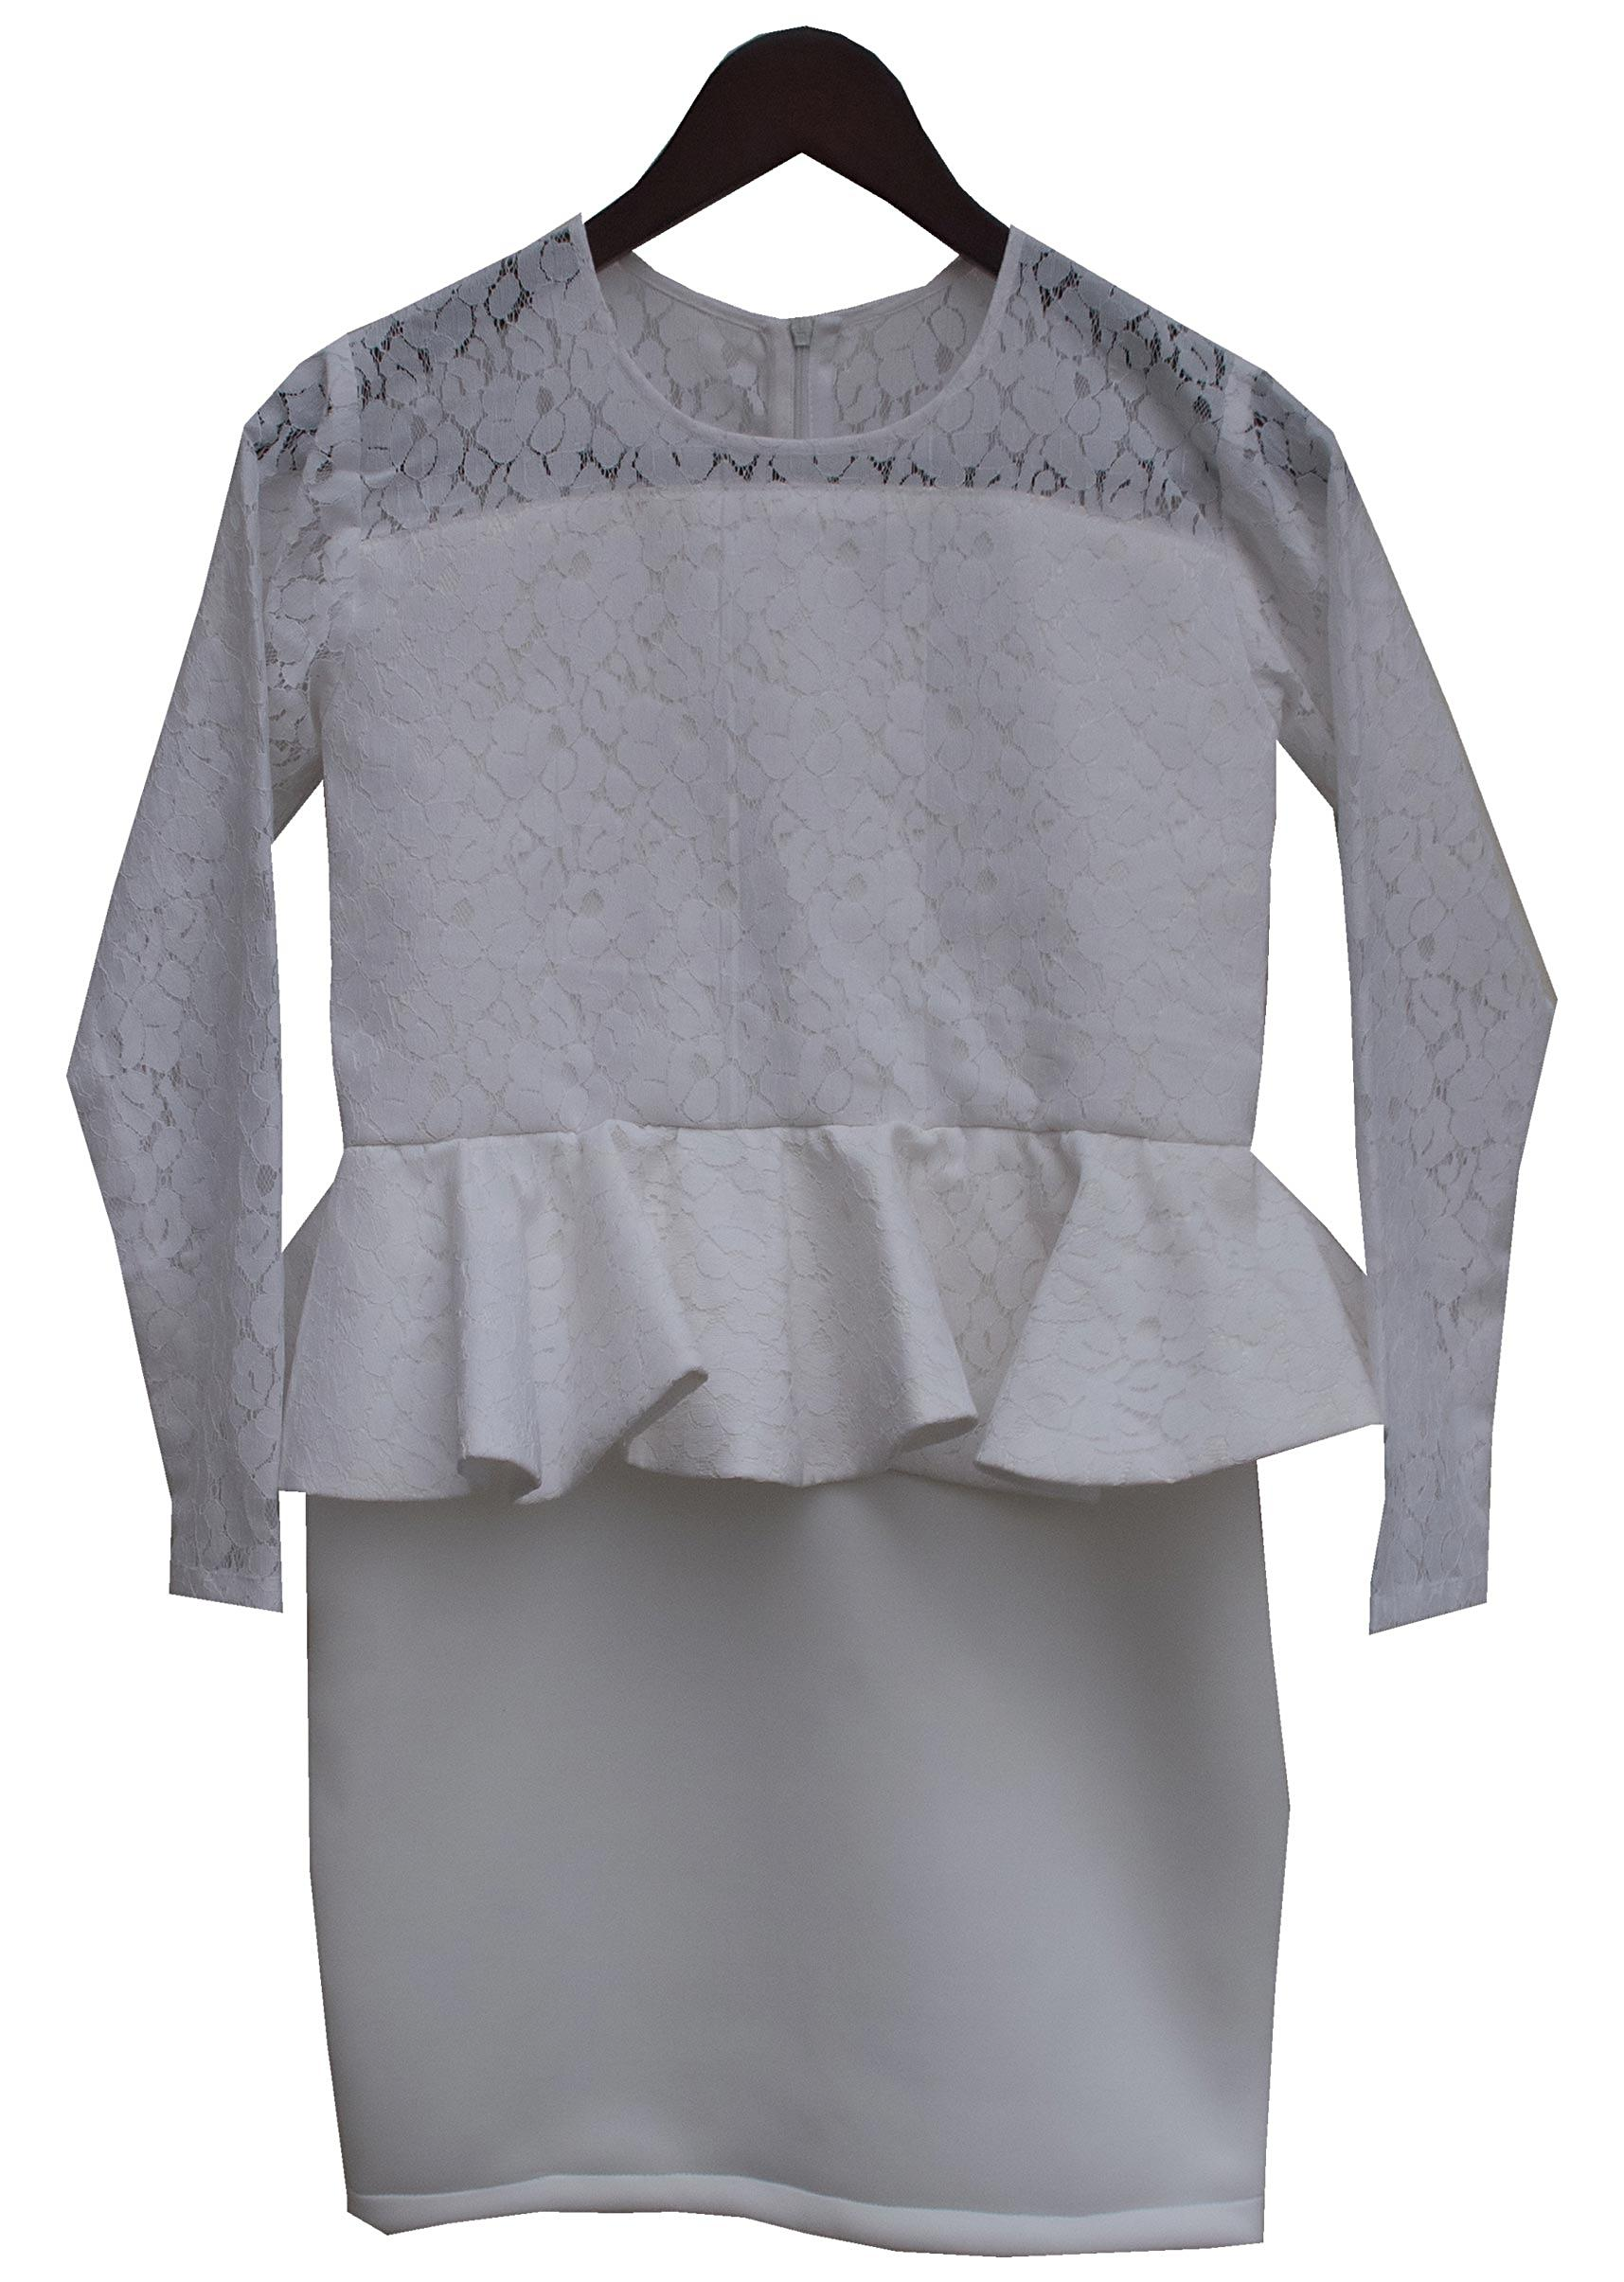 dbbaf674699 Lace Fabric Peplum Top with attached Skirt by Fayon Kids